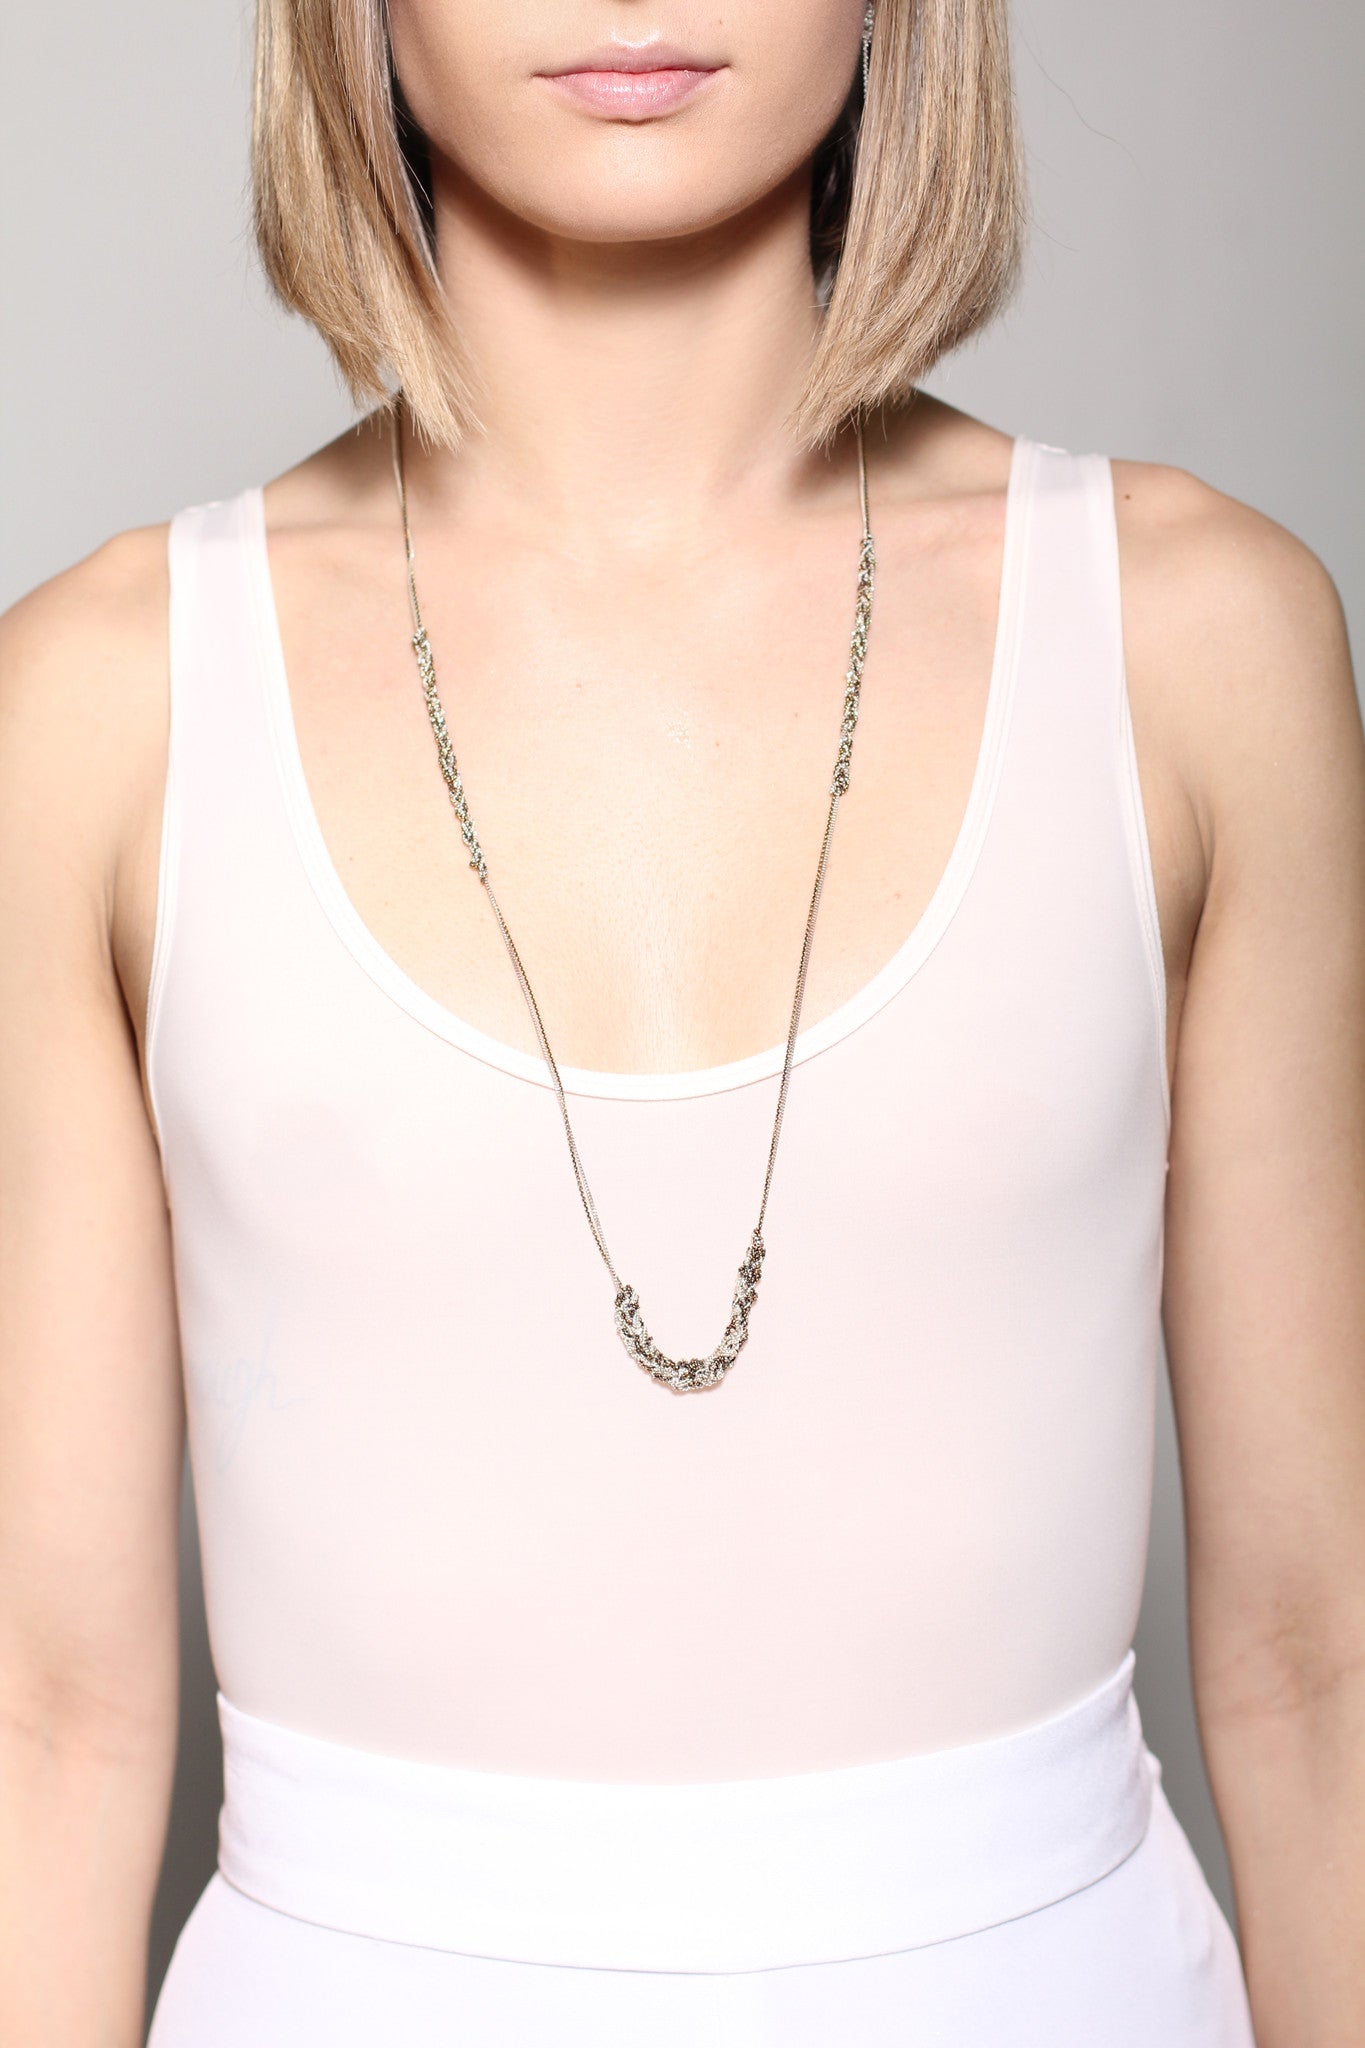 Spaced Bare Chain in Silver + Ultraviolet